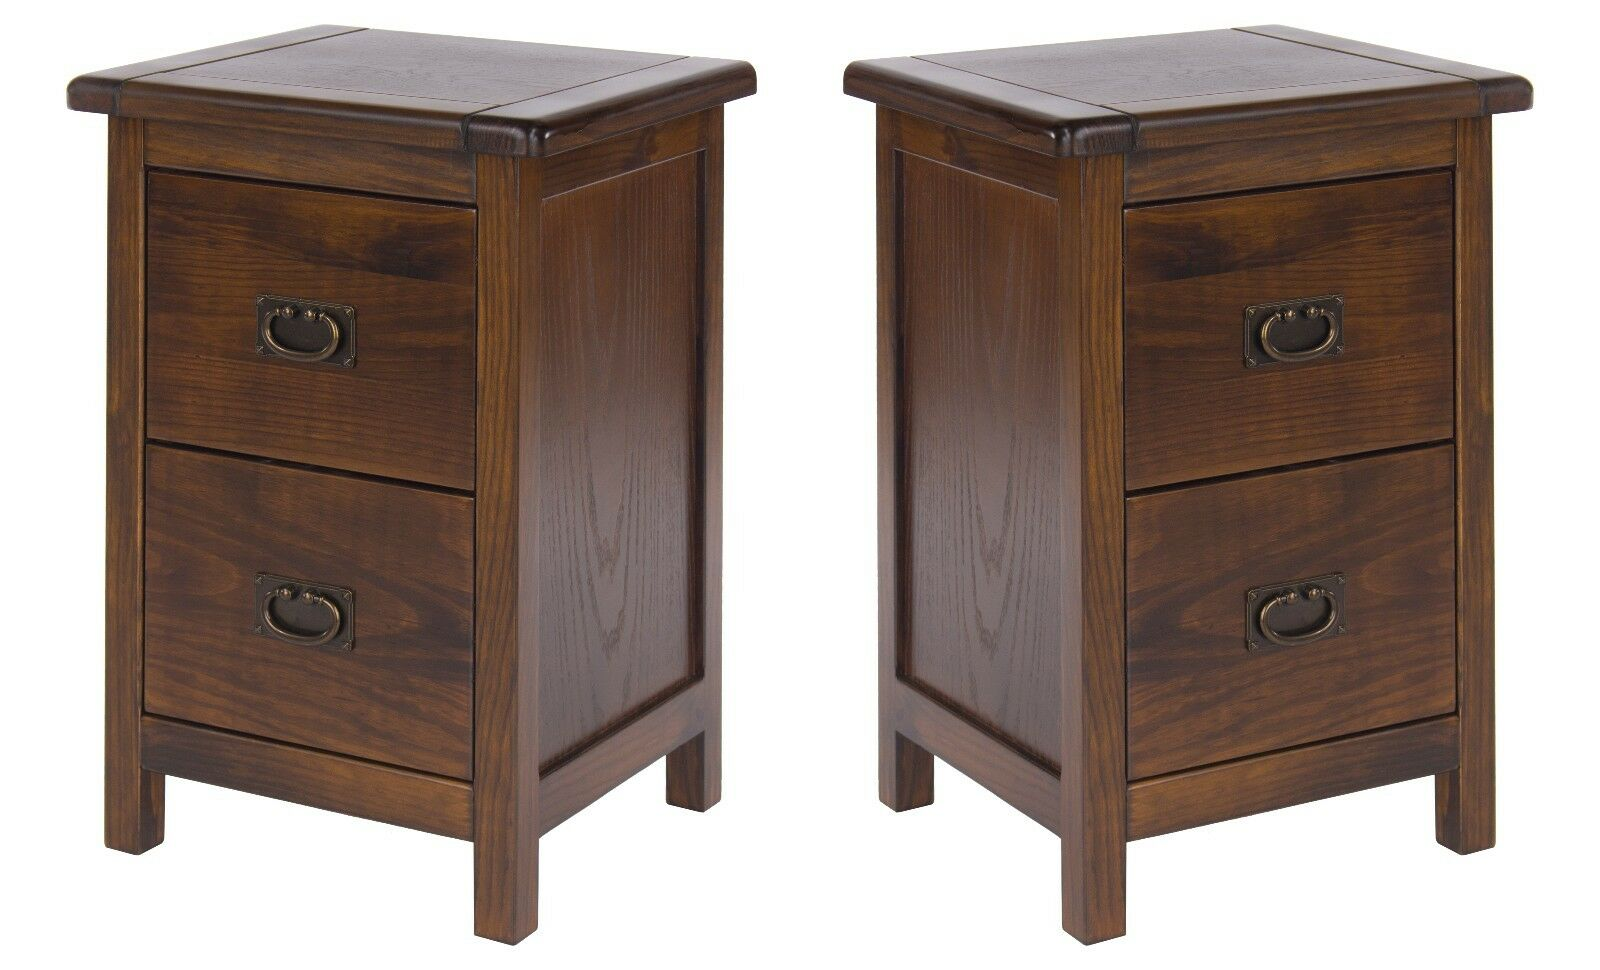 pair of bedside cabinets tables dark wood baltia solid wood bedroom furniture ebay. Black Bedroom Furniture Sets. Home Design Ideas